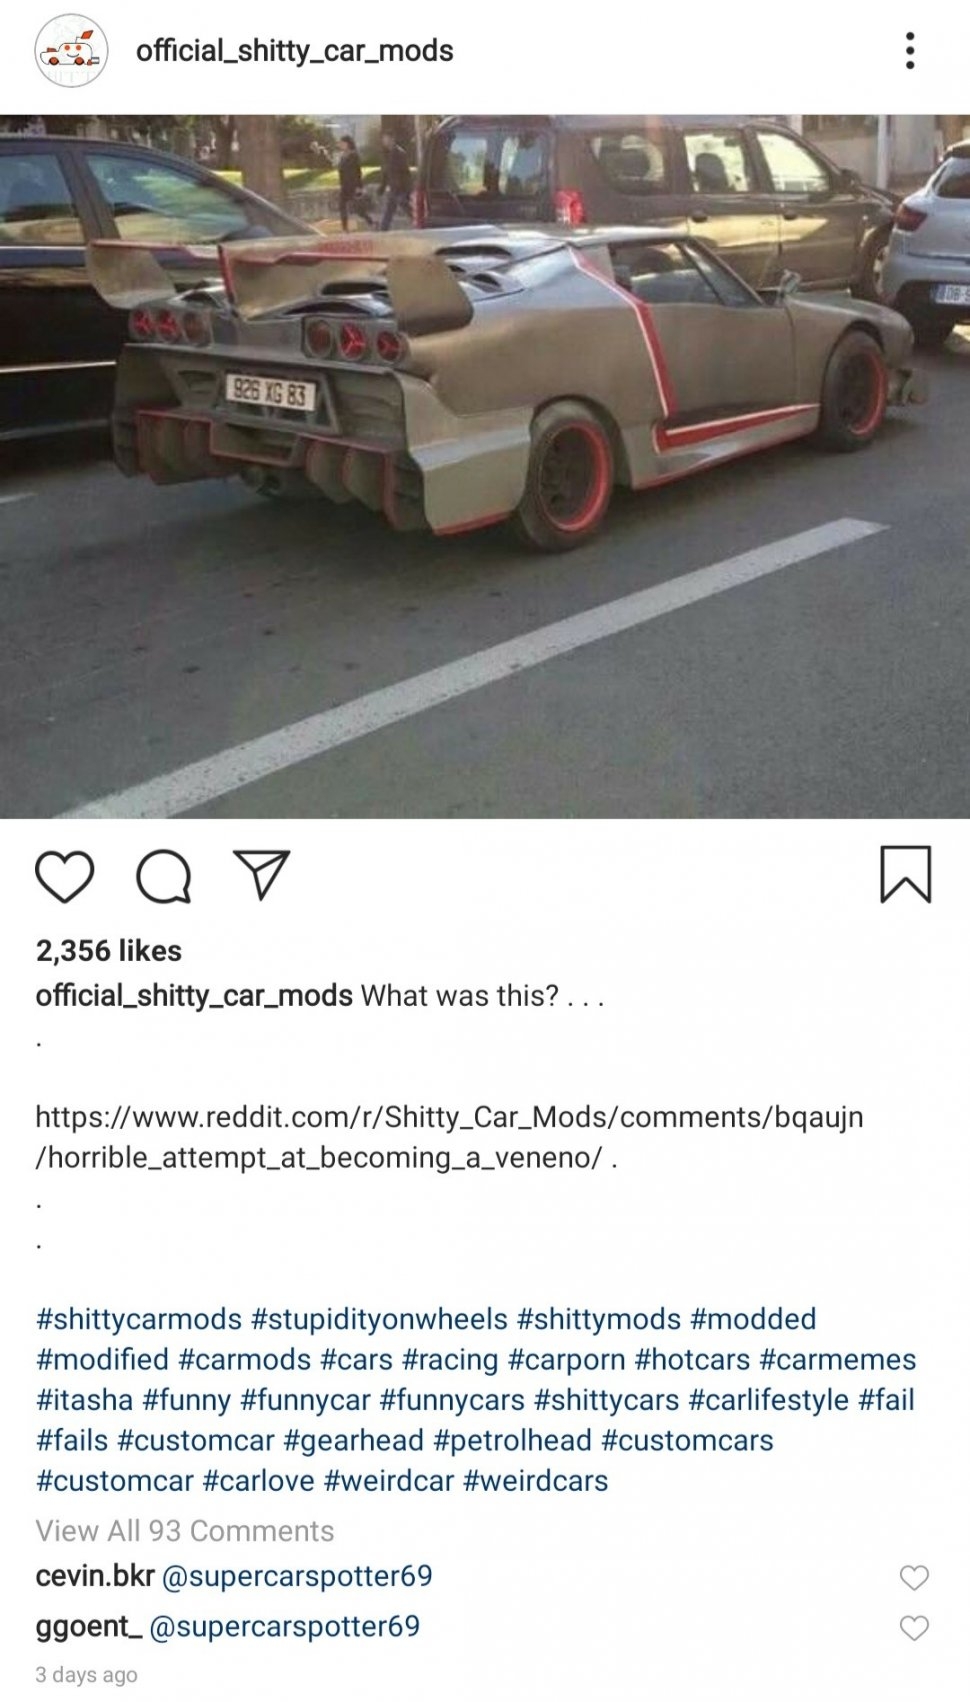 Modifikasi Mobil Supaya Mirip Lamborghini. (Instagram/official_shitty_car_mods)